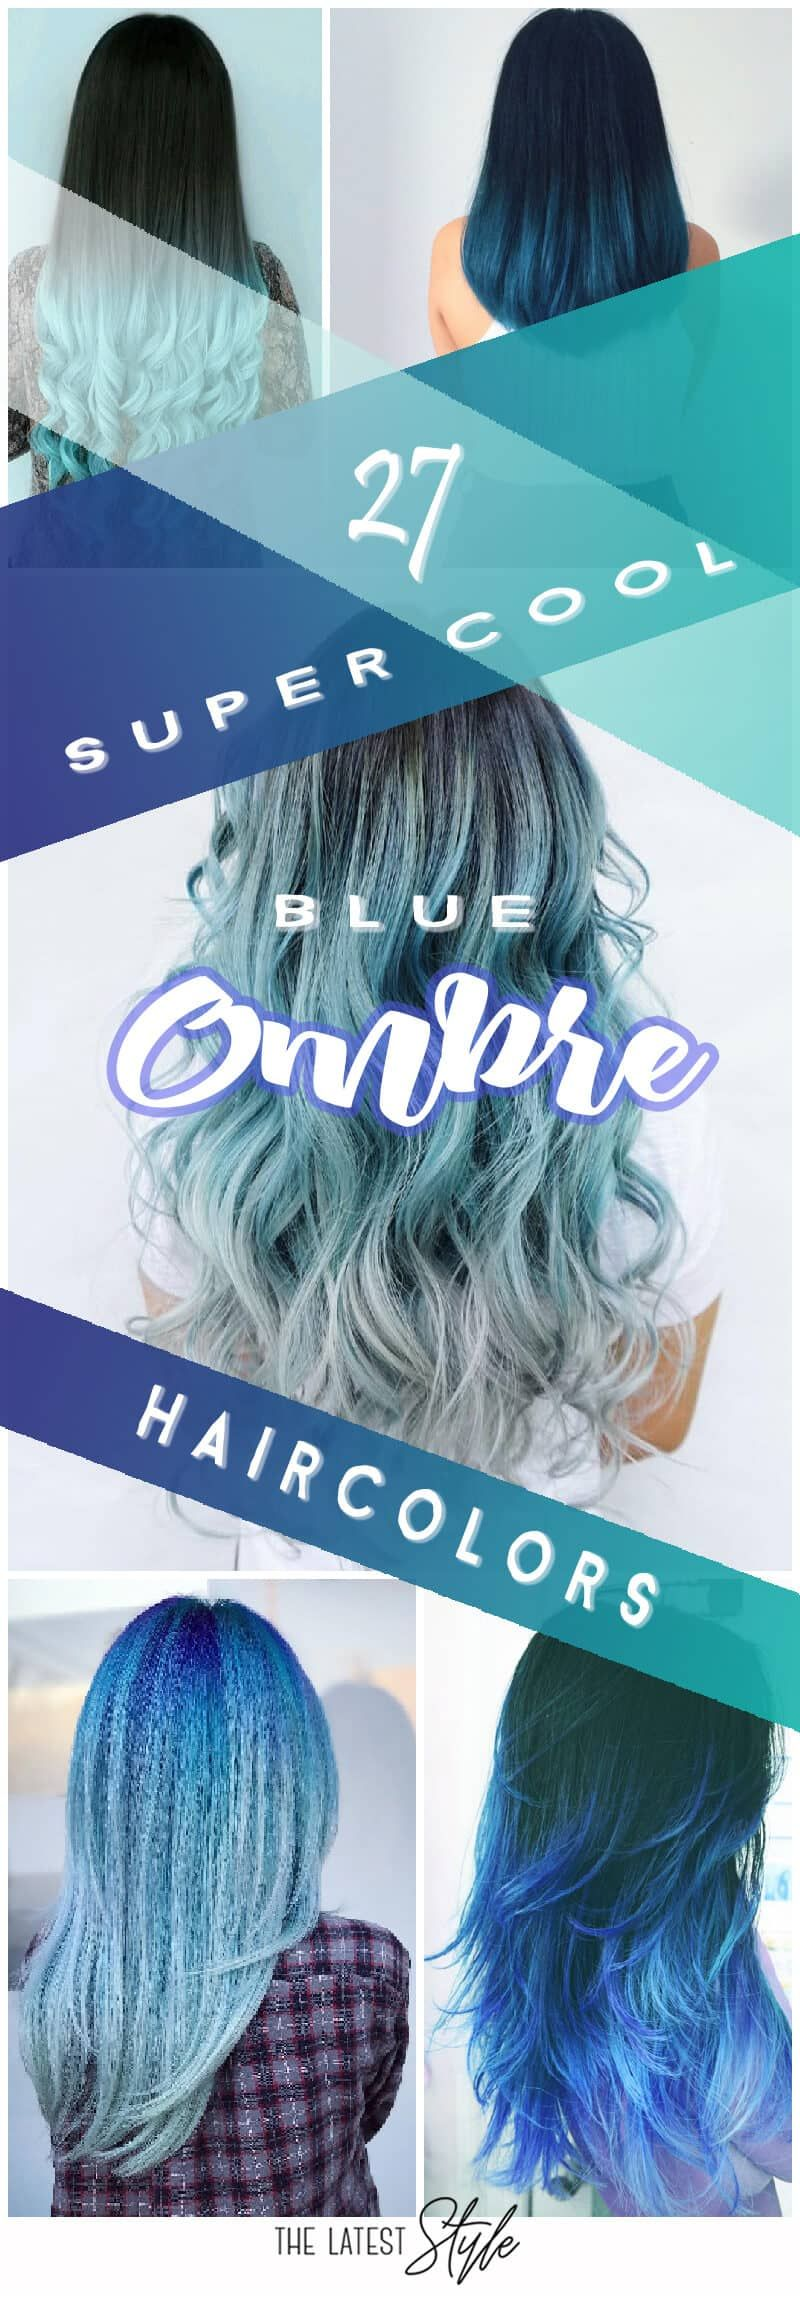 super cool blue ombre hairstyles haircut ideas pinterest